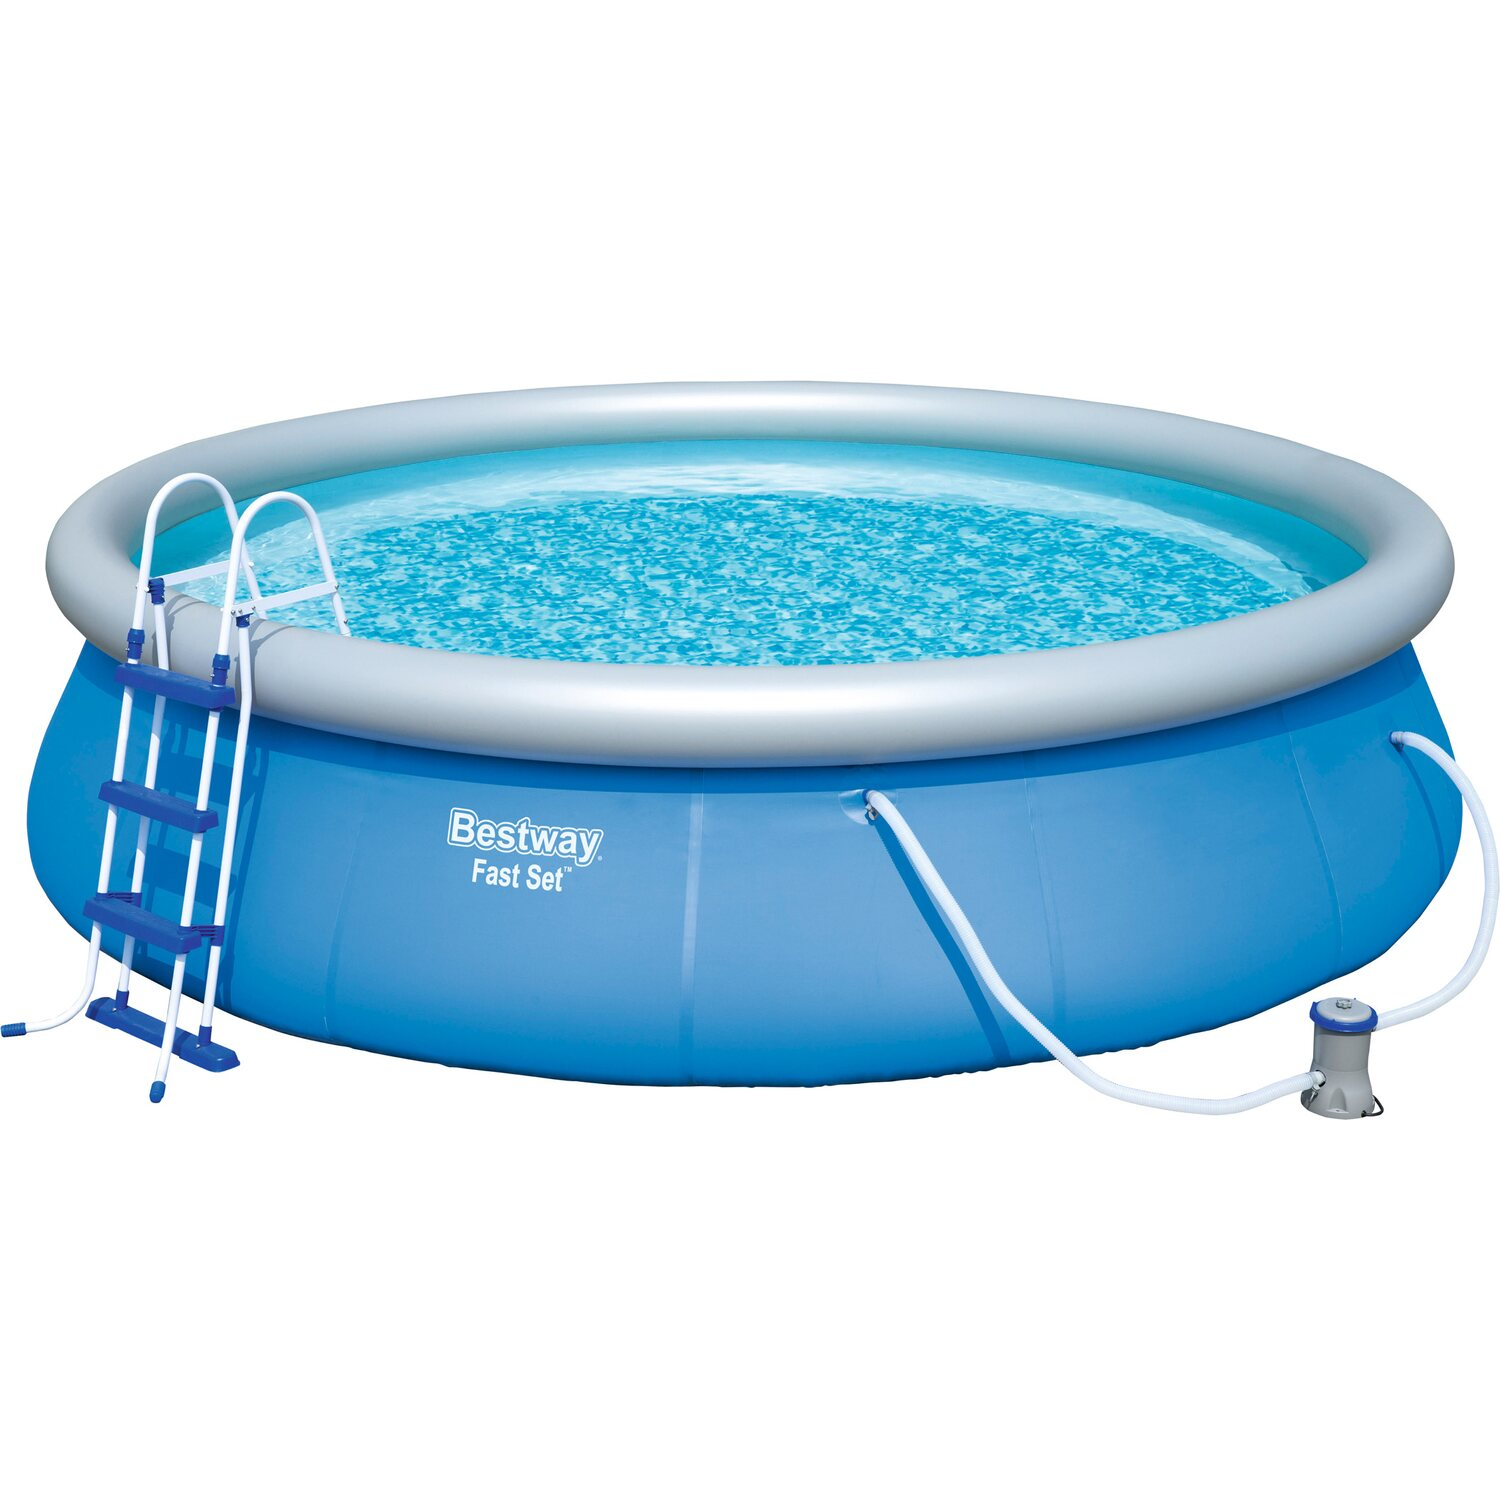 Bestway fast set pool kaufen bei obi for Obi solarplane pool